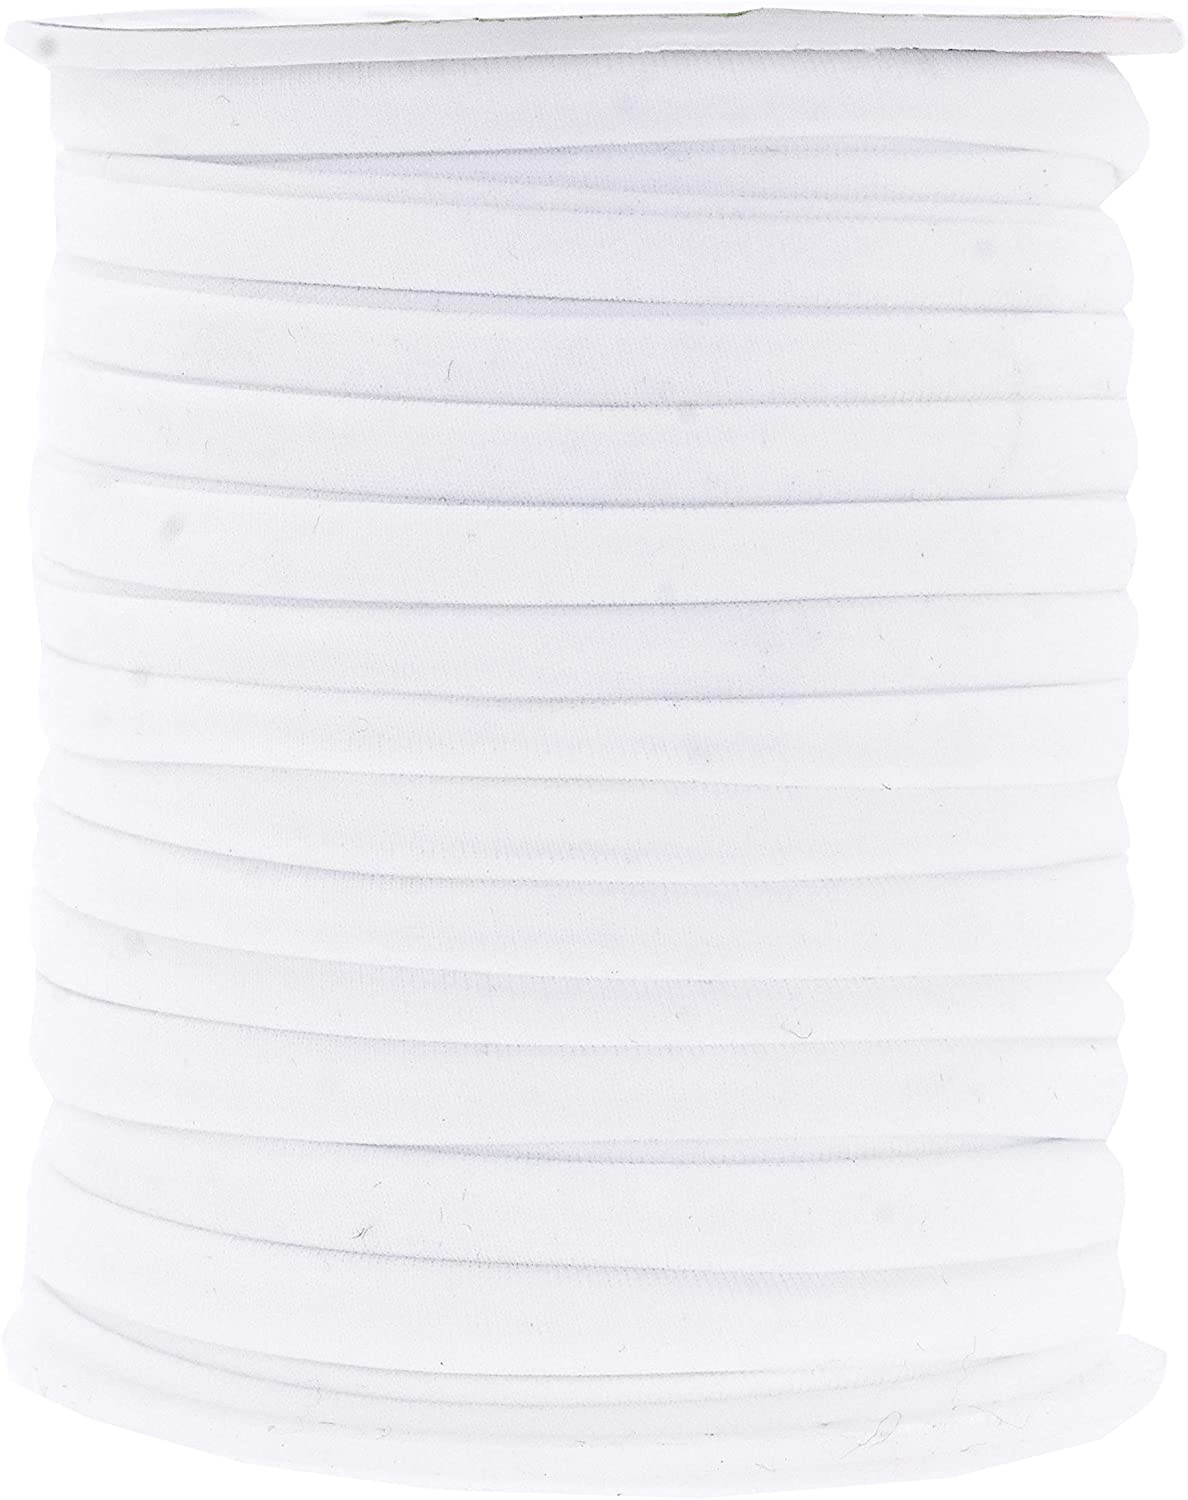 Mandala Crafts Soft Elastic Cord from Spandex Nylon Fabric for Jewelry Making, Sewing, and Crafting (White)